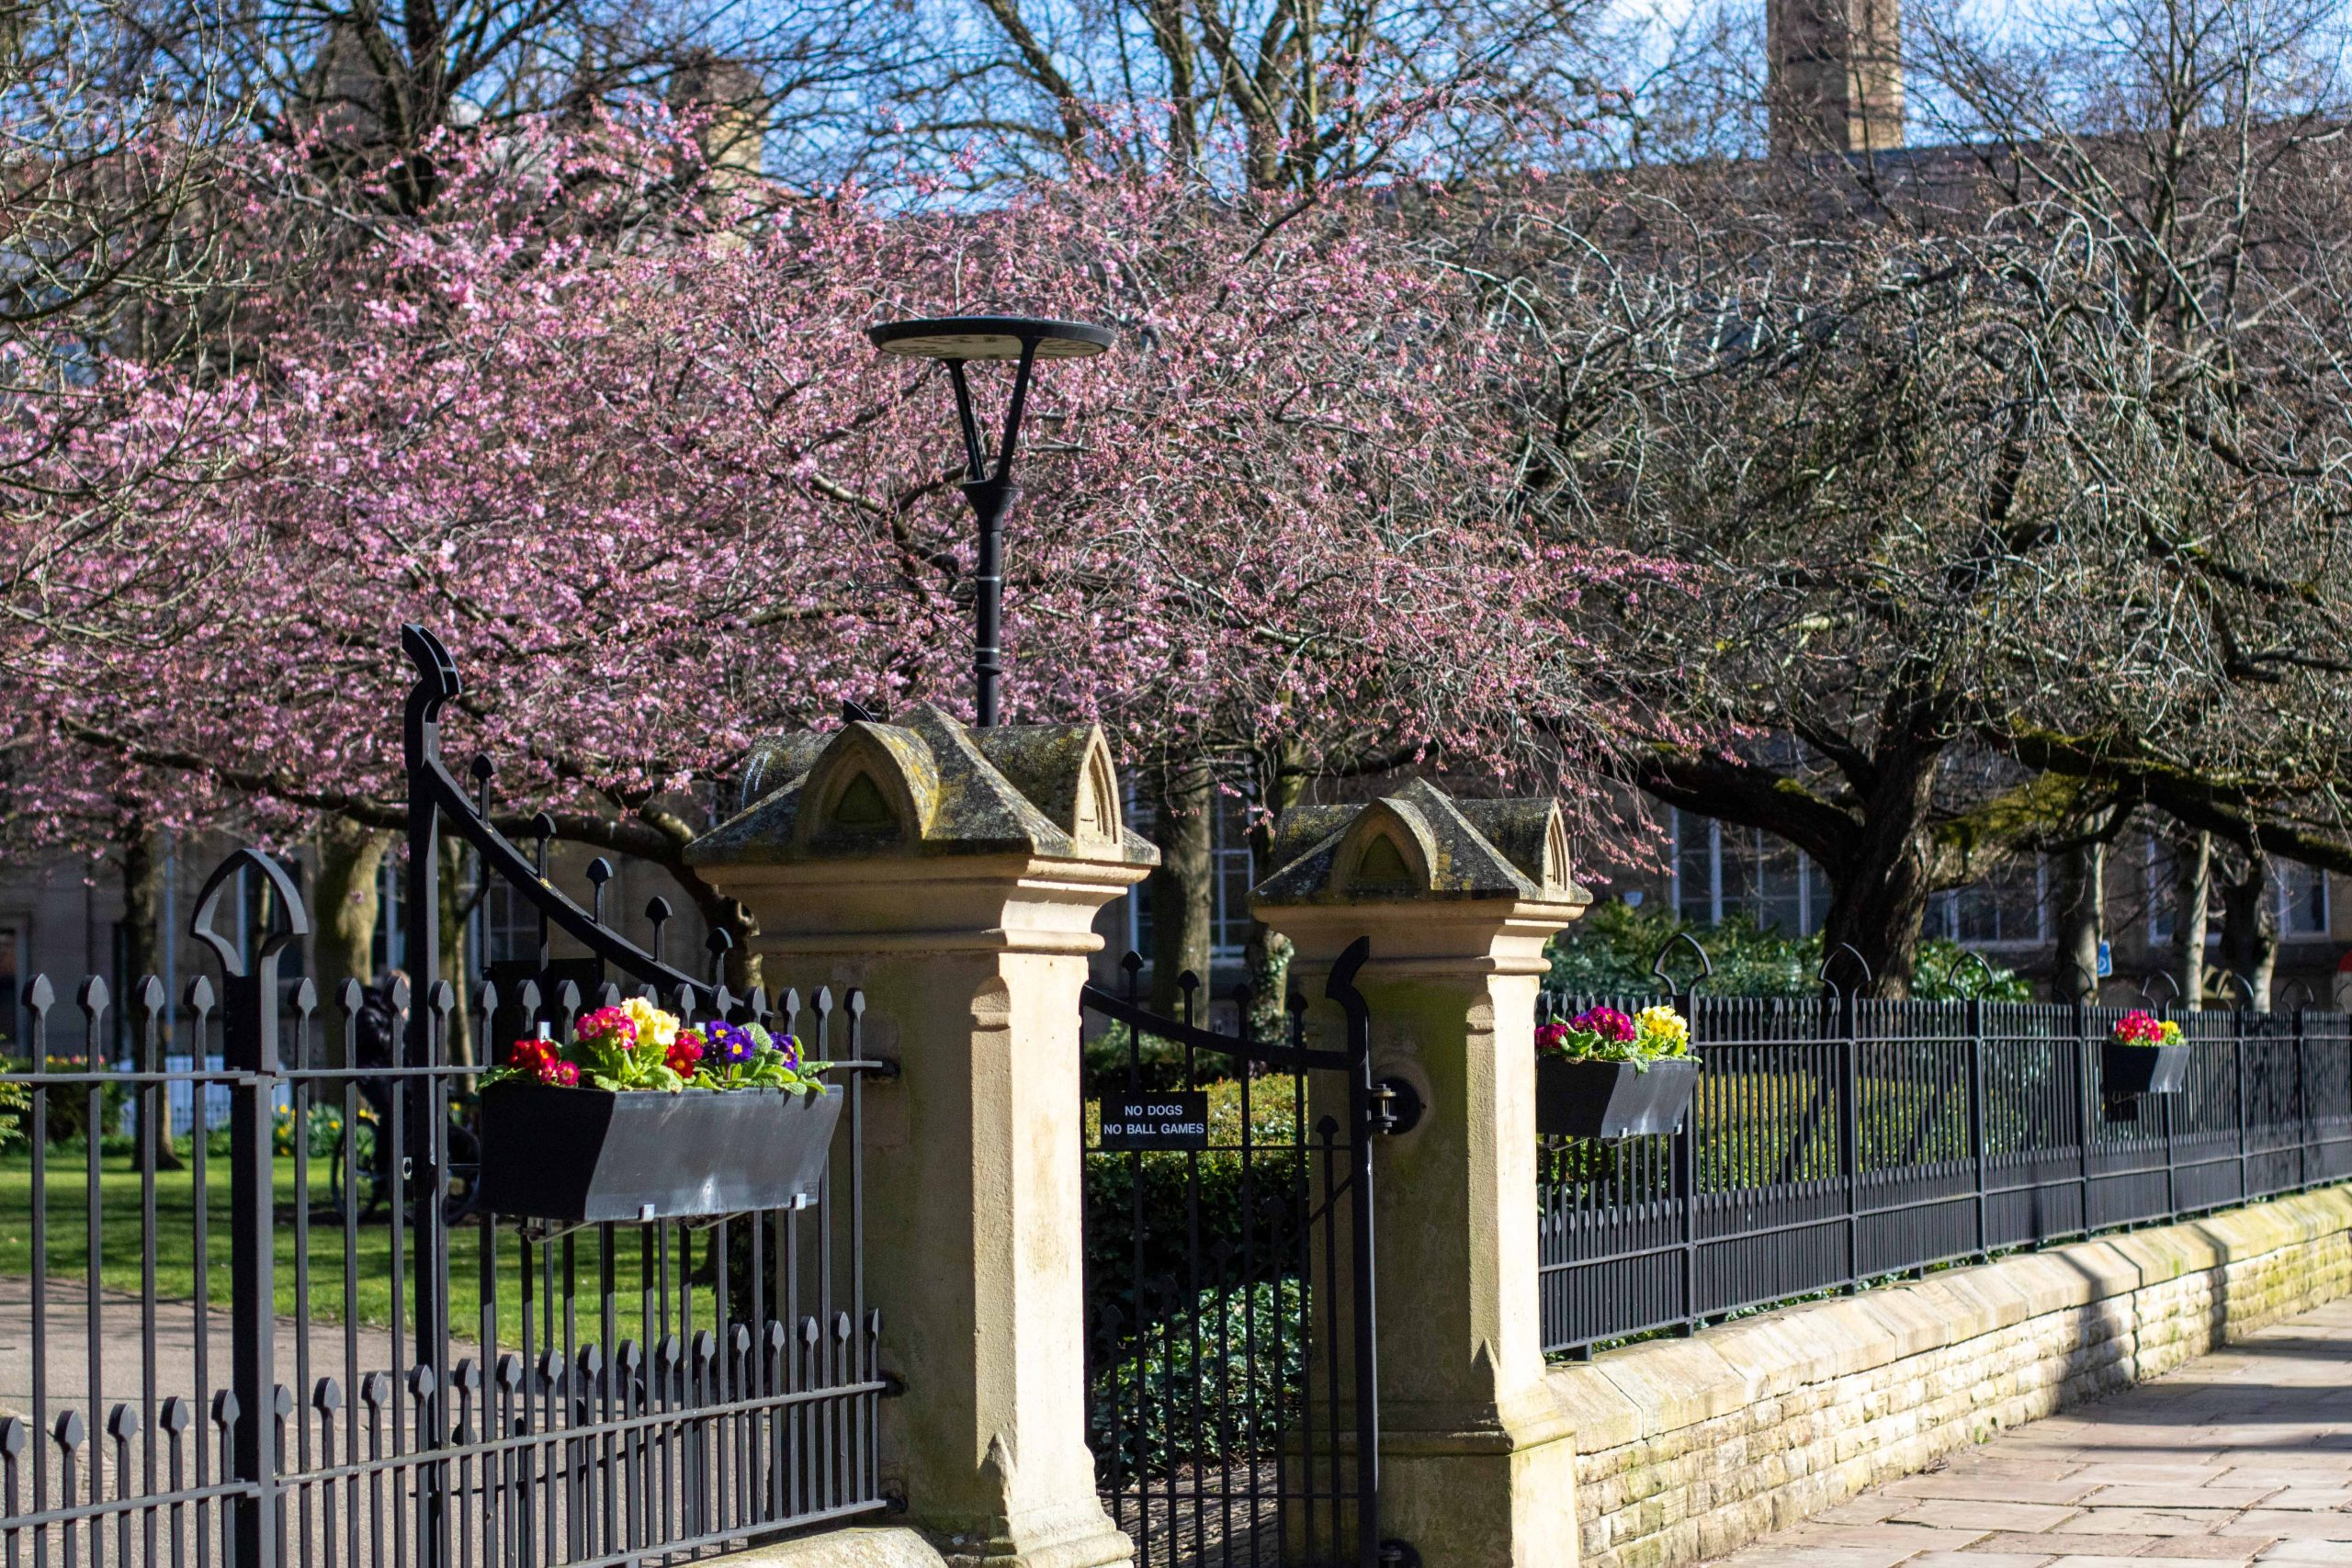 Flowers in bloom at All Saints Park one of the green spaces on Oxford Road Corridor